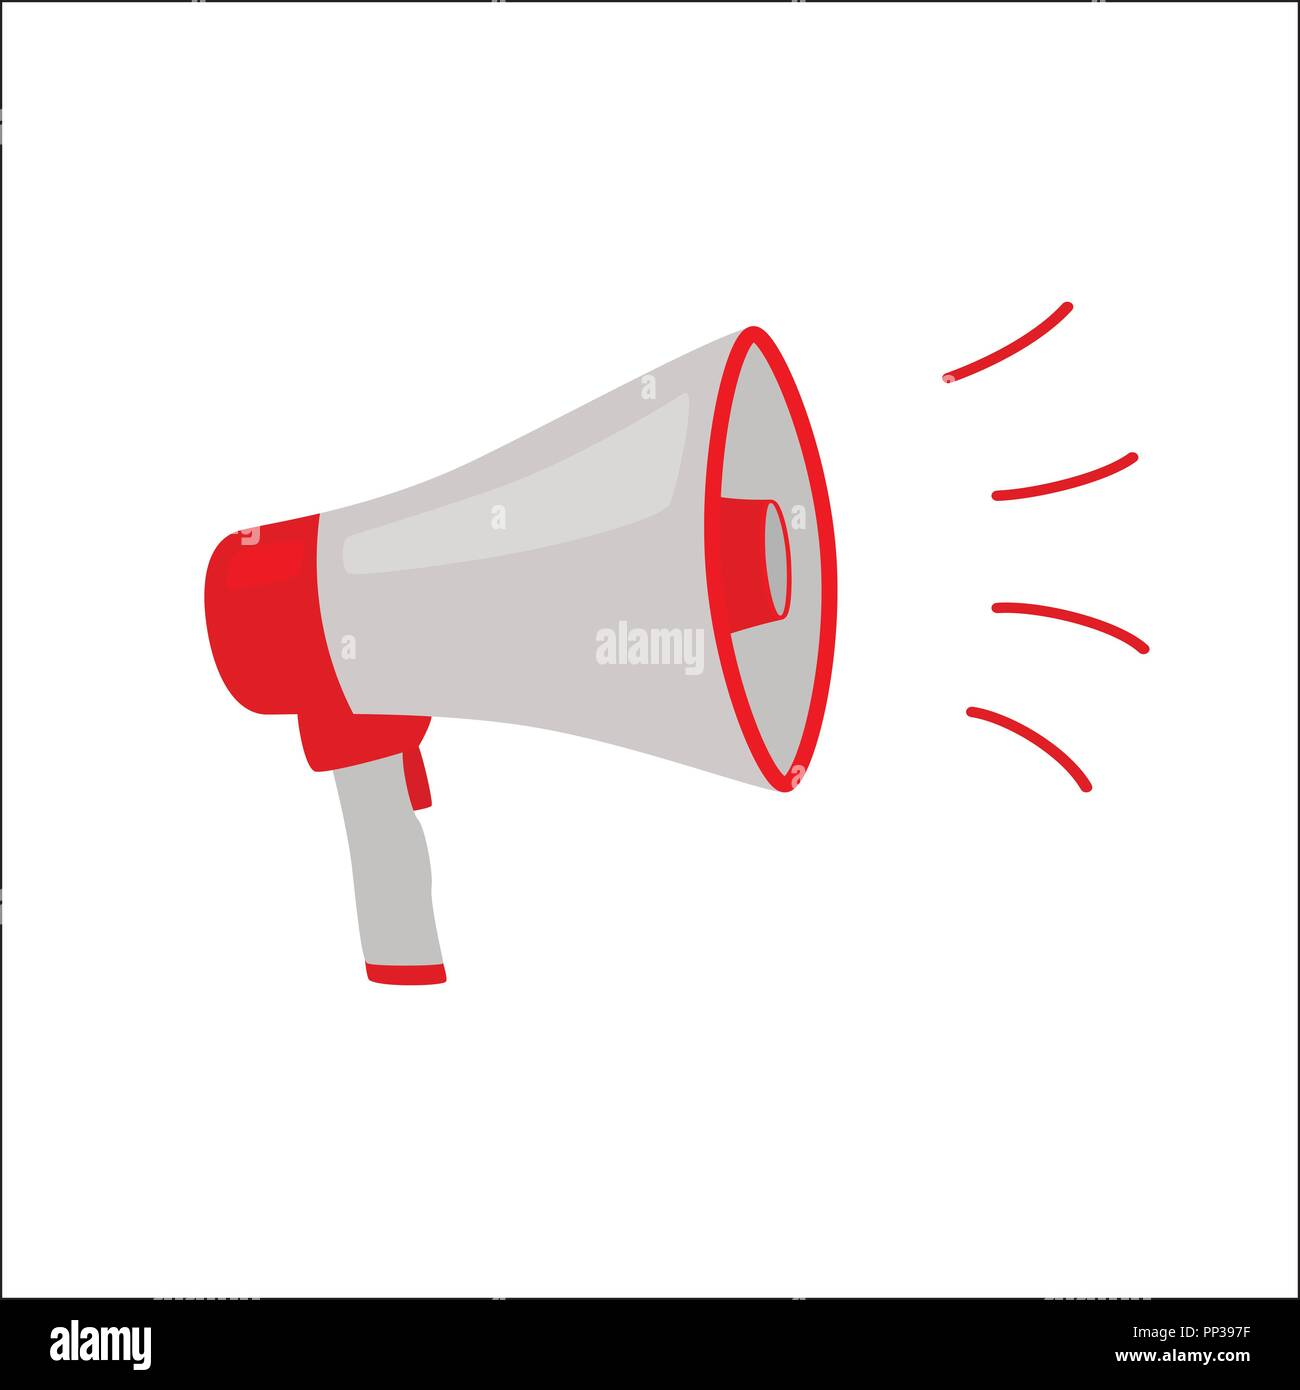 Colorful red grey megaphone or bullhorn for amplifying the voice for protests rallies or public speaking isolated on white, vector illustration - Stock Vector